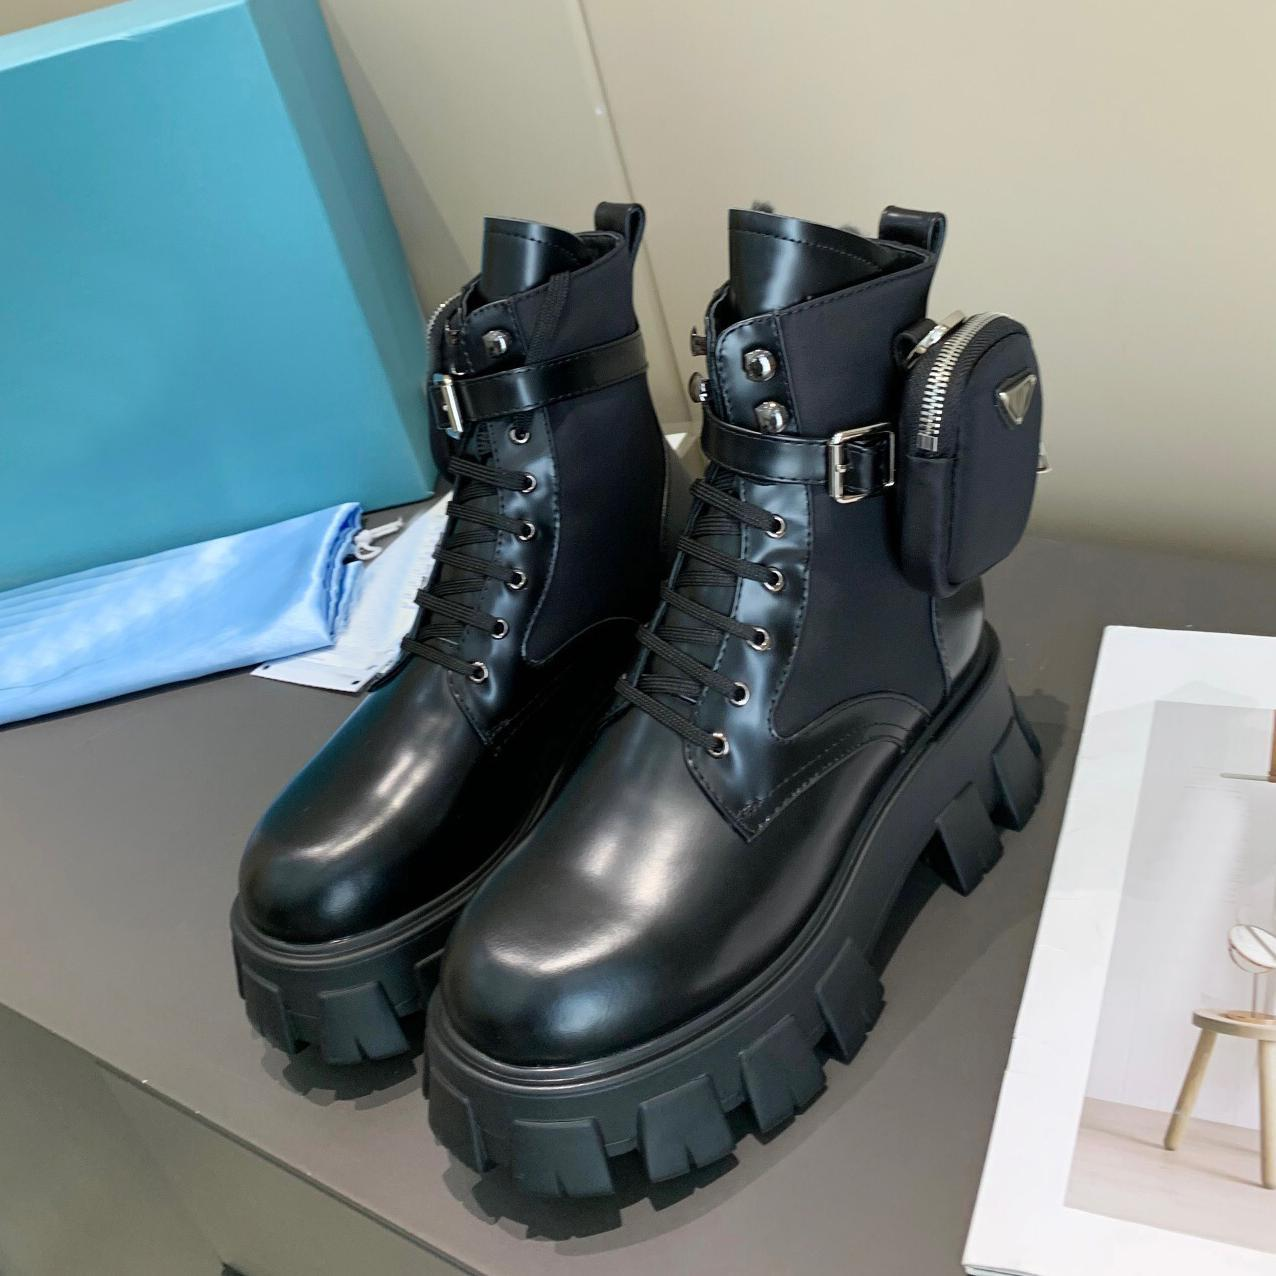 New Rois Leather and Monolith Re-Nylon Boot Ankle Martin Boots military inspired combat boots nylon pouch attached to the ankle with strap